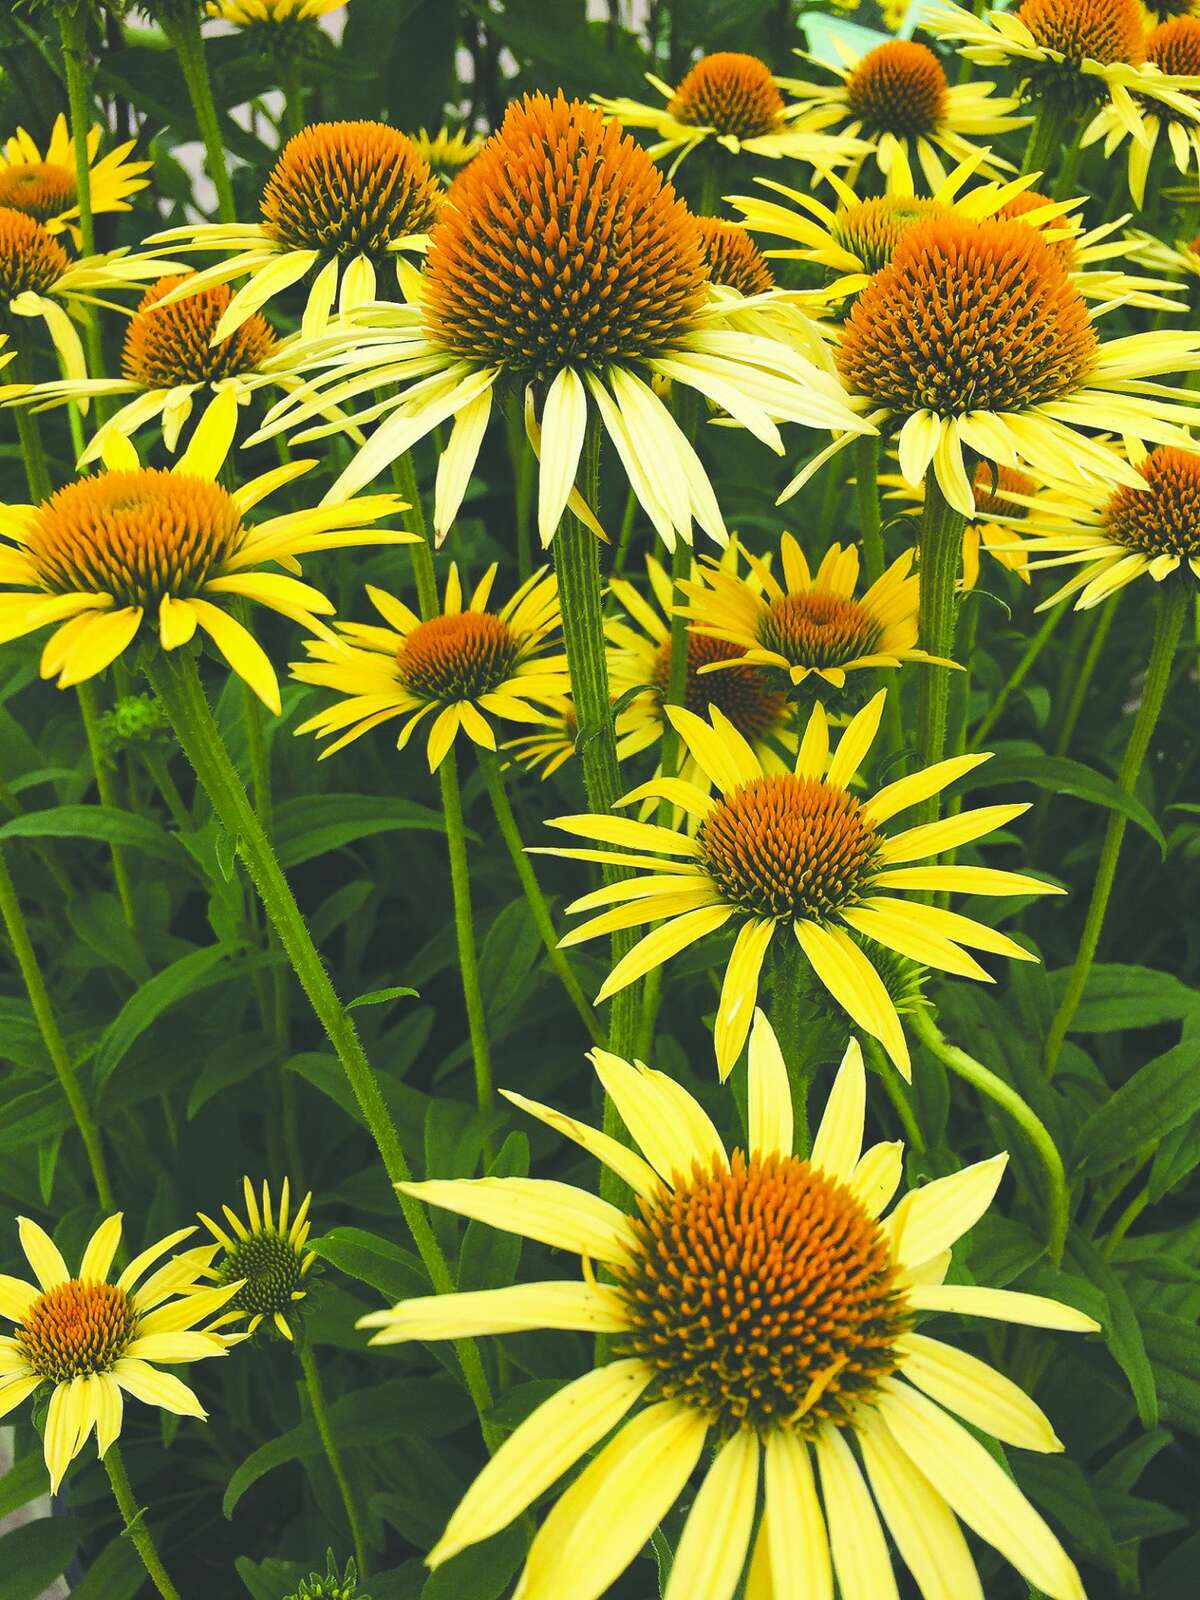 Leaving healthy perennials like coneflower stand for winter provides food for birds, winter interest and homes for many beneficial insects.